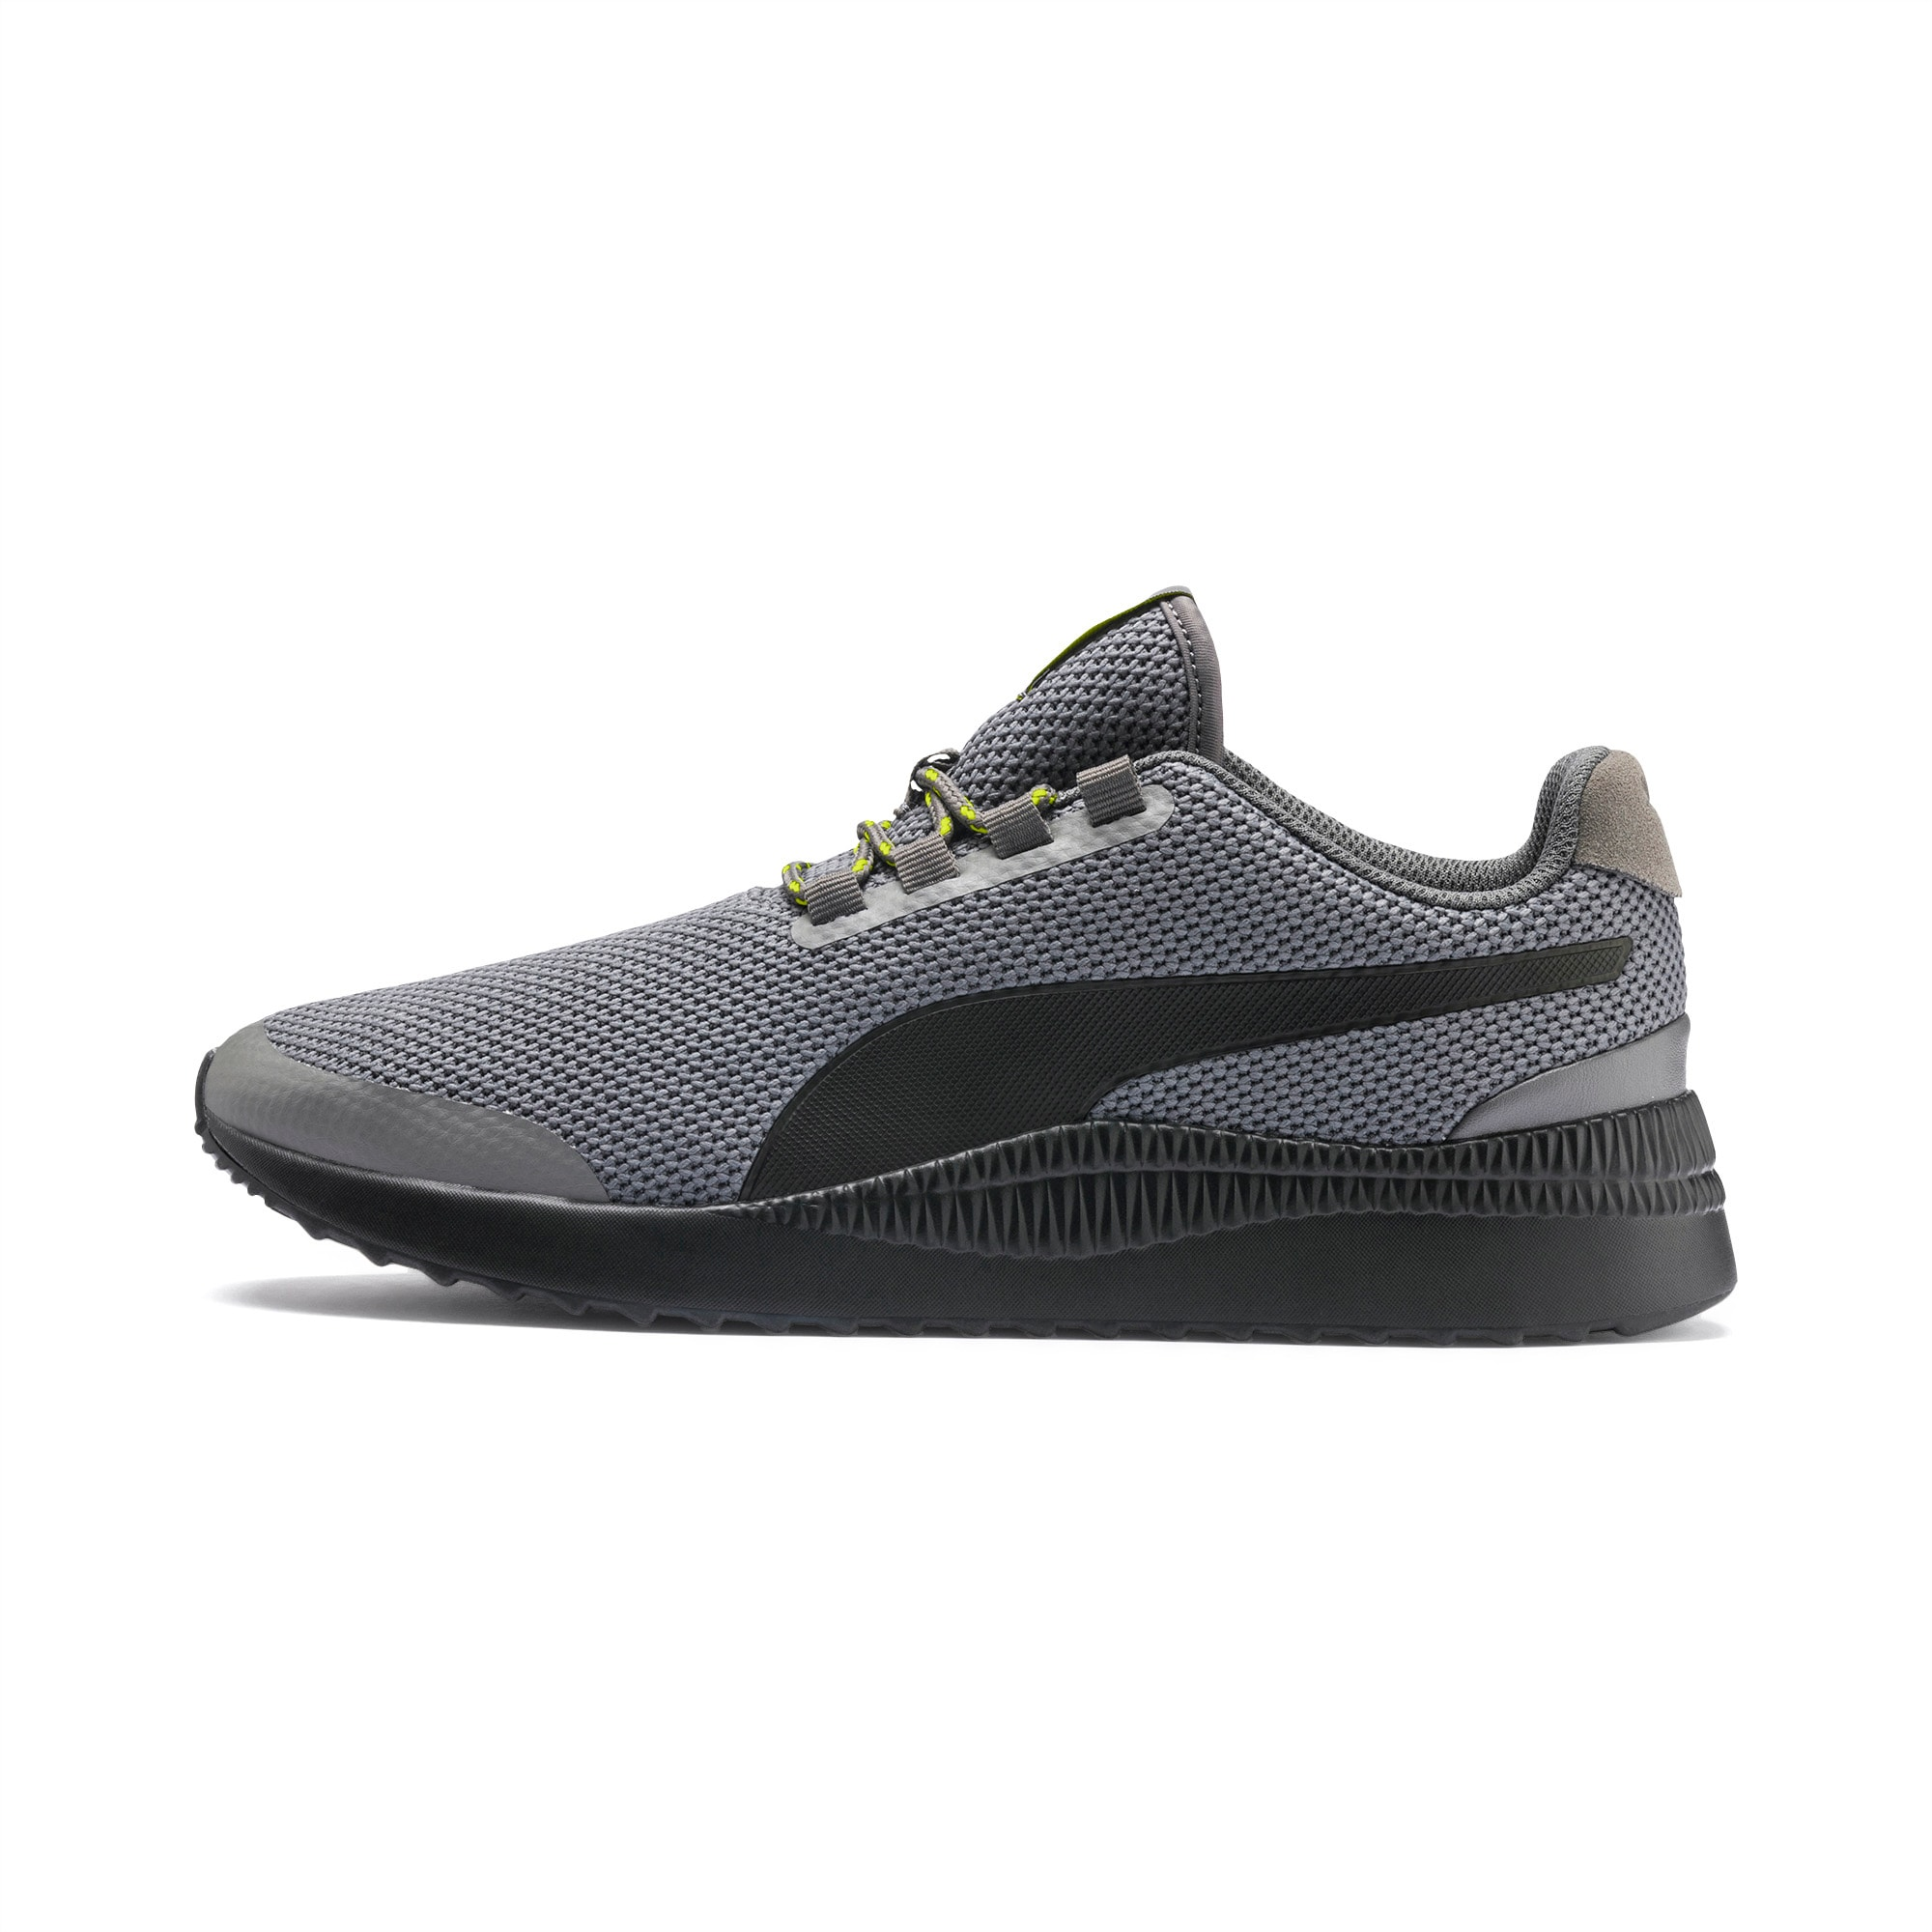 Pacer Next FS Knit 2.0 Trainers